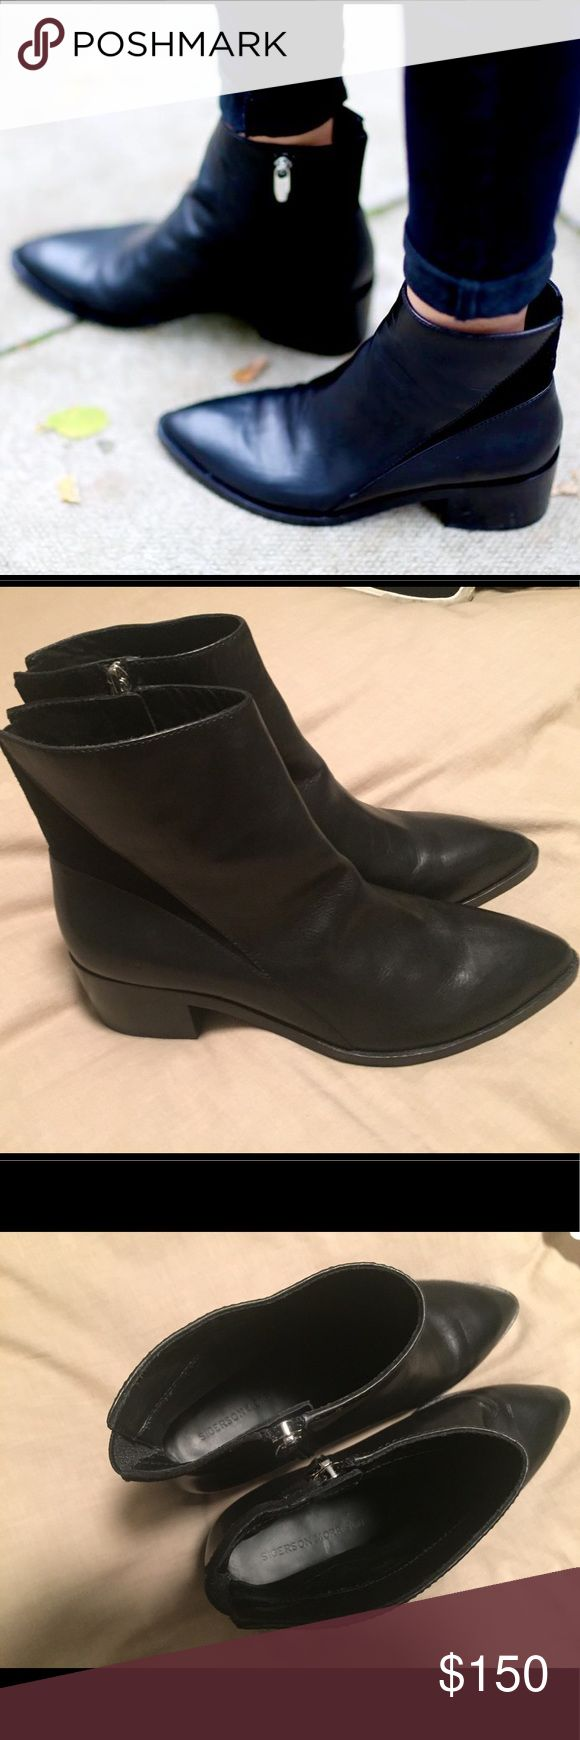 "Barely worn Sigerson Morrison Scarlett booties! These  black Sigerson Morrison Scarlett ankle boots have only been worn a handful of times (as you can see by the soles). Gorgeous leather with cool geometric suede insert. 2"" stacked heel for stability and tapered almond toe. Sold out everywhere! Sigerson Morrison Shoes Ankle Boots & Booties"